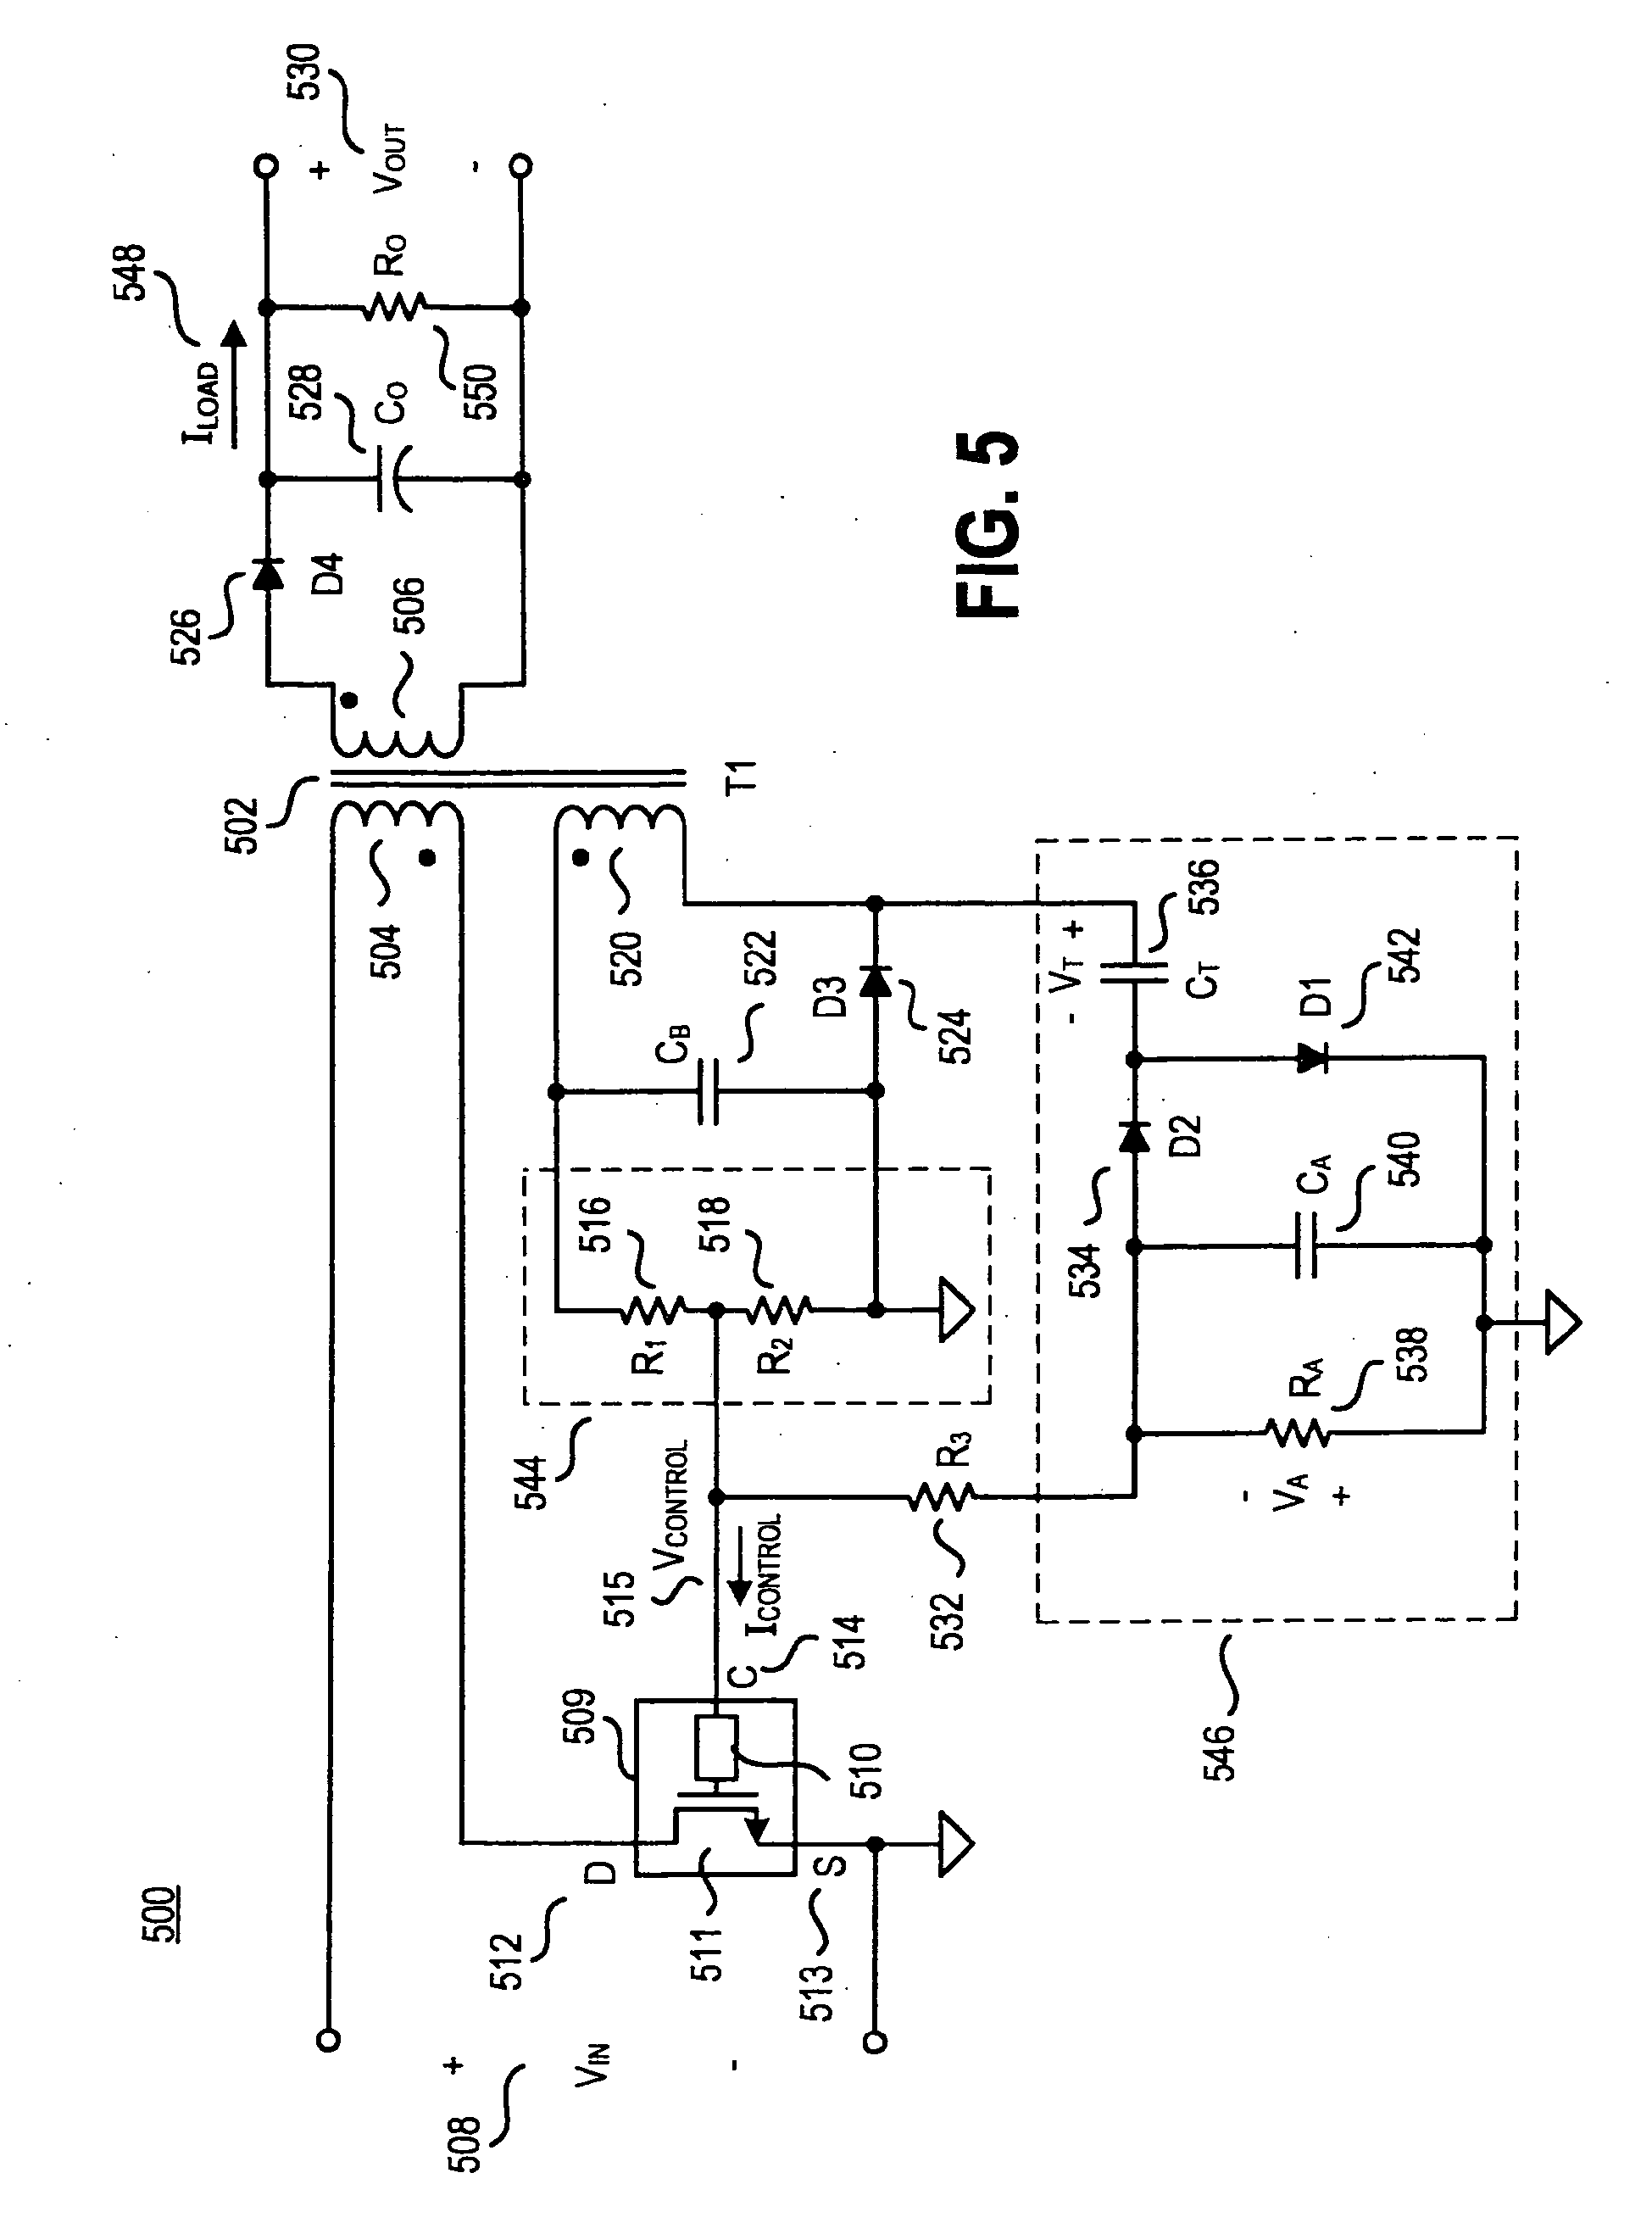 patent ep1764901a2 method and apparatus to improve regulation of a AM Modulation patent drawing